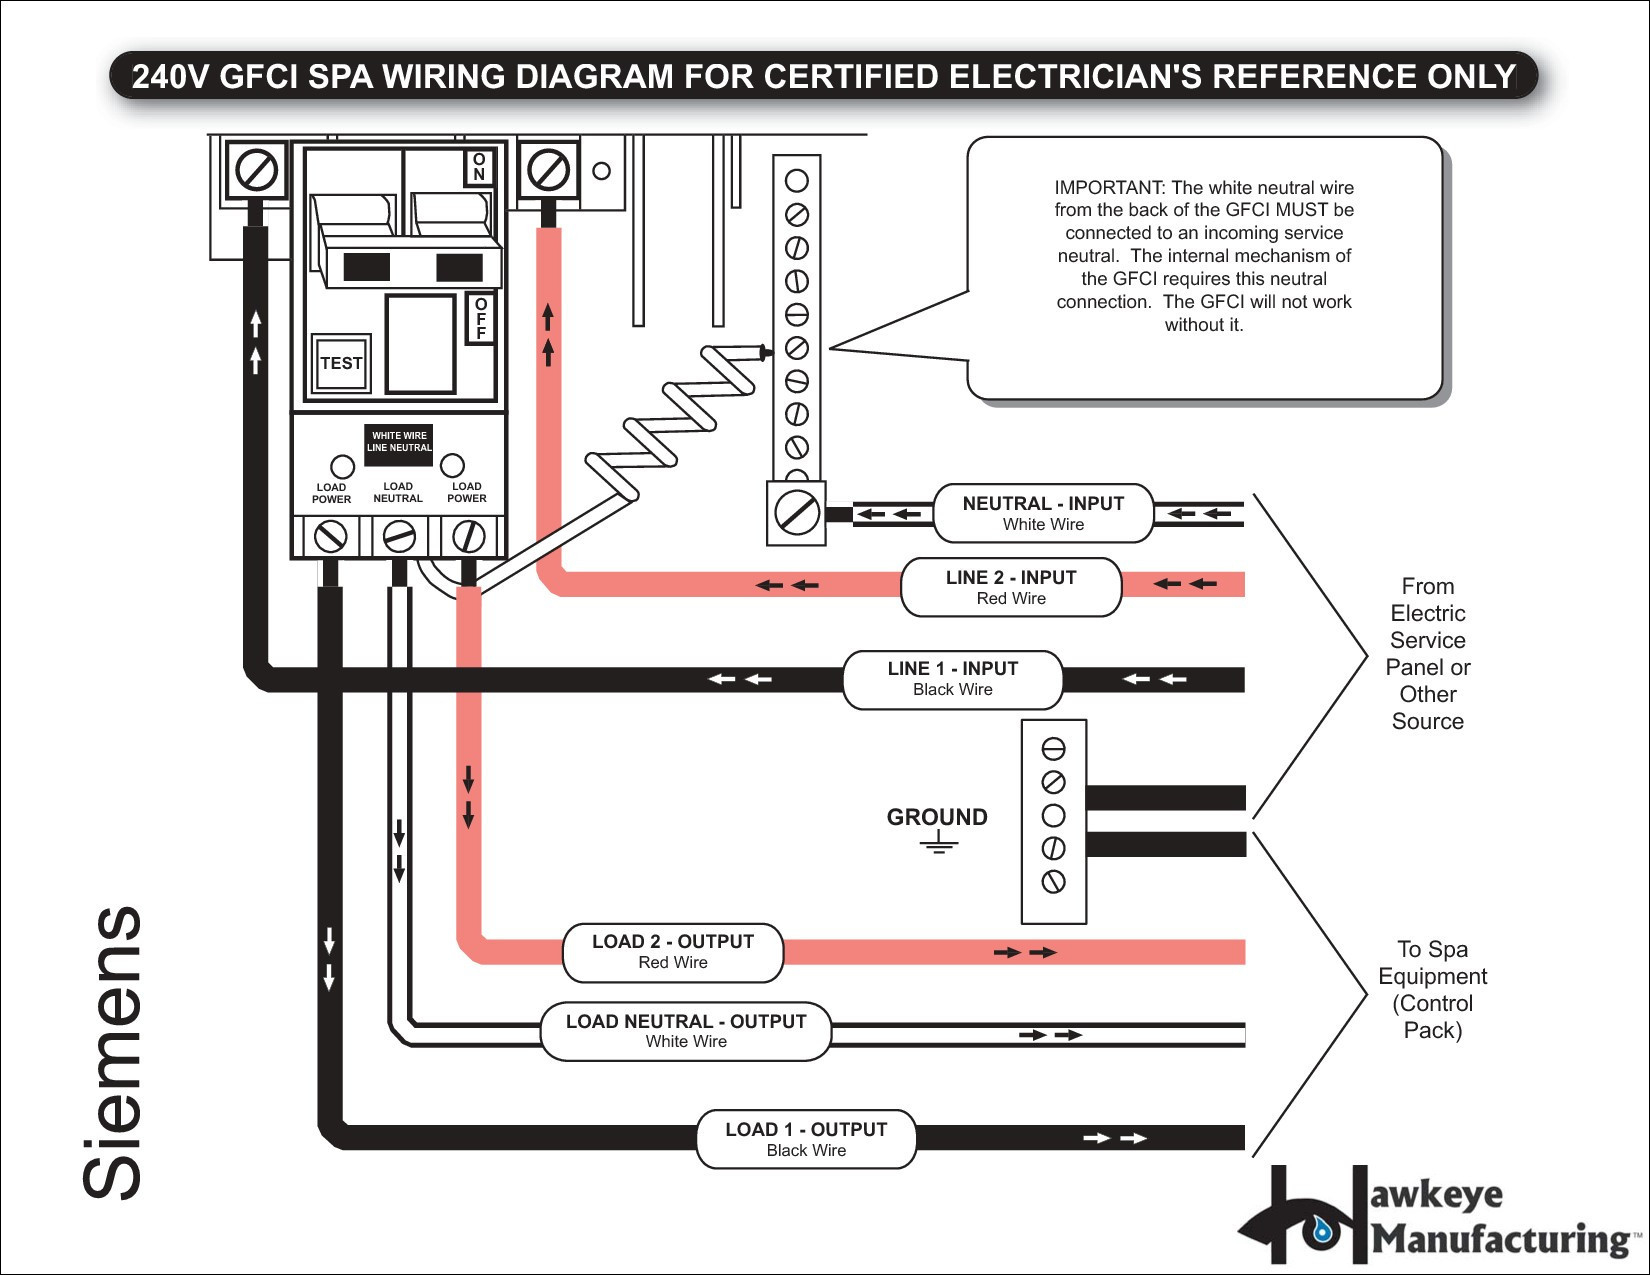 3 Pole Circuit Breaker Wiring Diagram - 3 Pole Circuit Breaker Wiring  Diagram Perfect Wiring Diagram